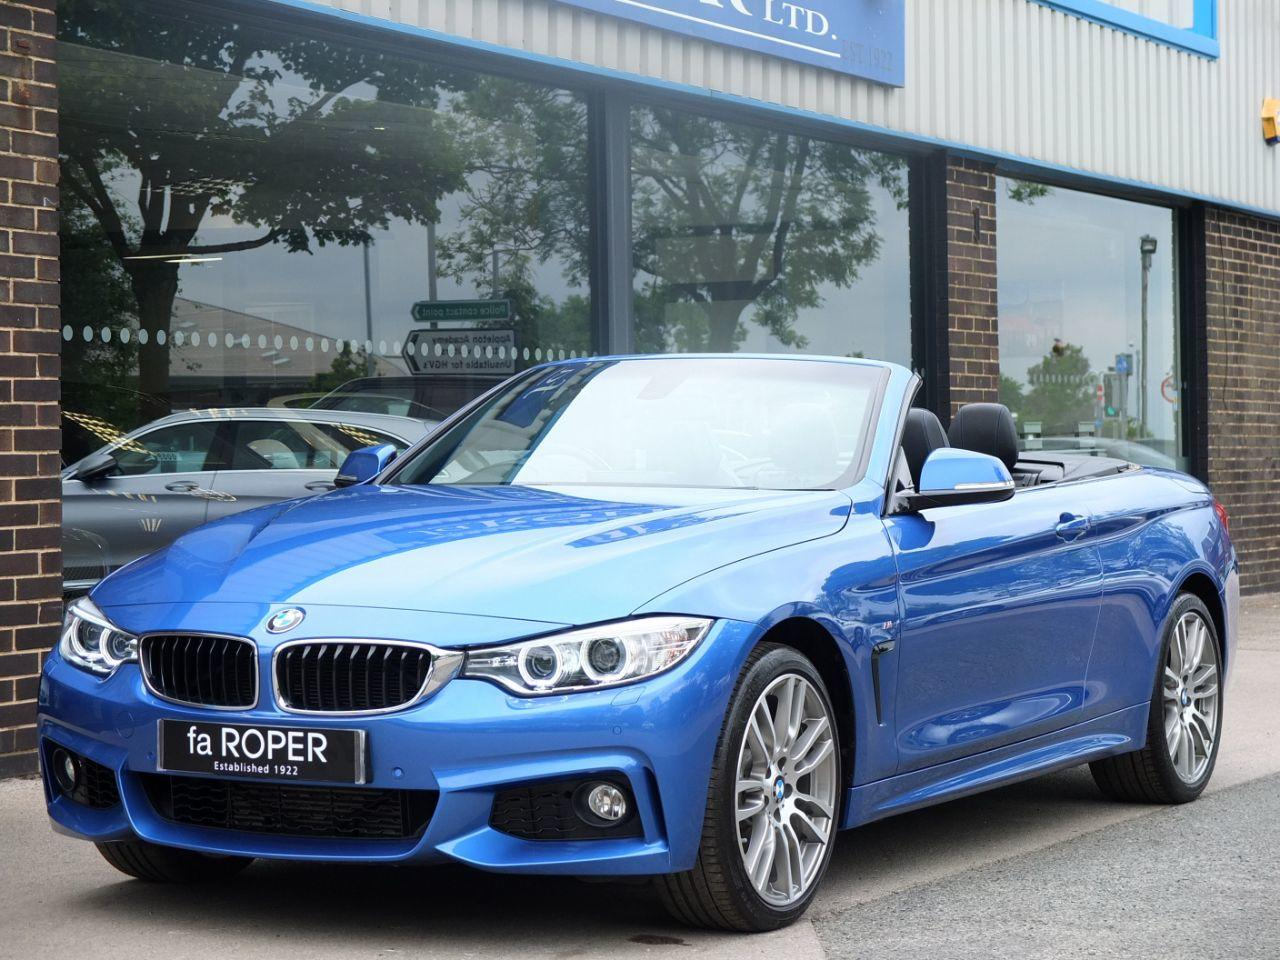 BMW 4 Series 3.0 435d xDrive M Sport Convertible Auto Convertible Diesel Estoril Blue MetallicBMW 4 Series 3.0 435d xDrive M Sport Convertible Auto Convertible Diesel Estoril Blue Metallic at fa Roper Ltd Bradford